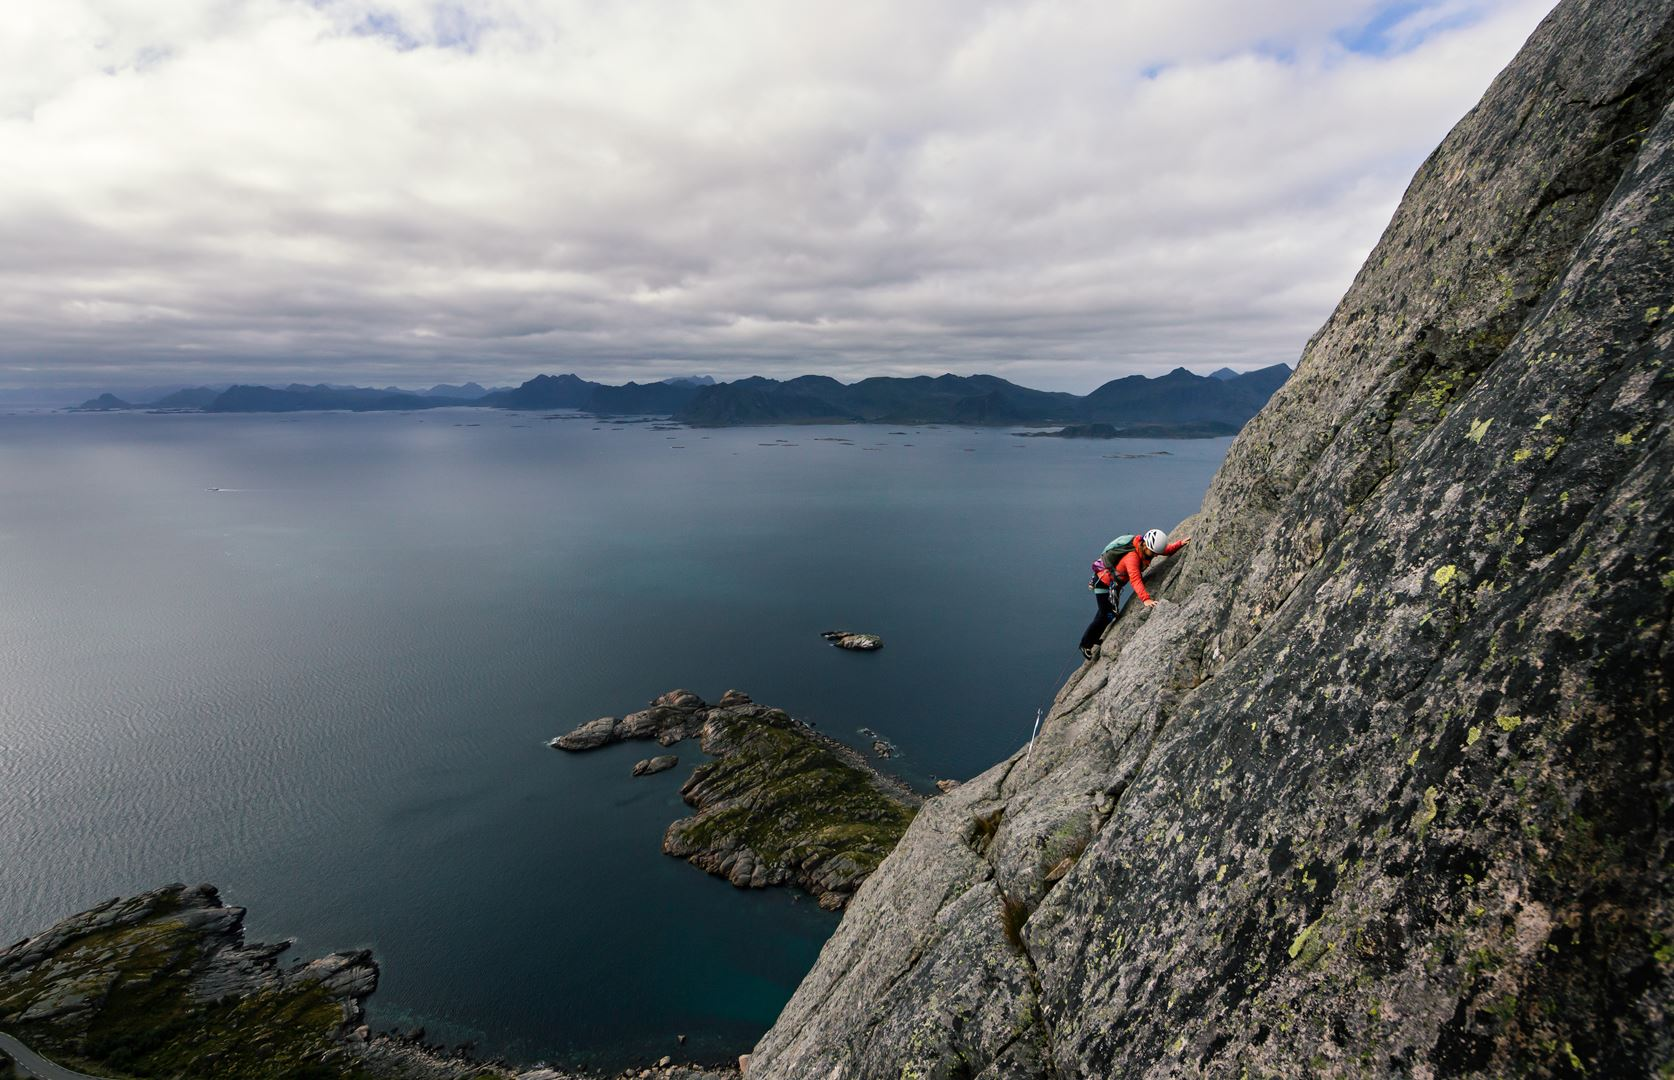 © Northern Alpine Guides, Lofoten Classic Rock - Northern Alpine guides